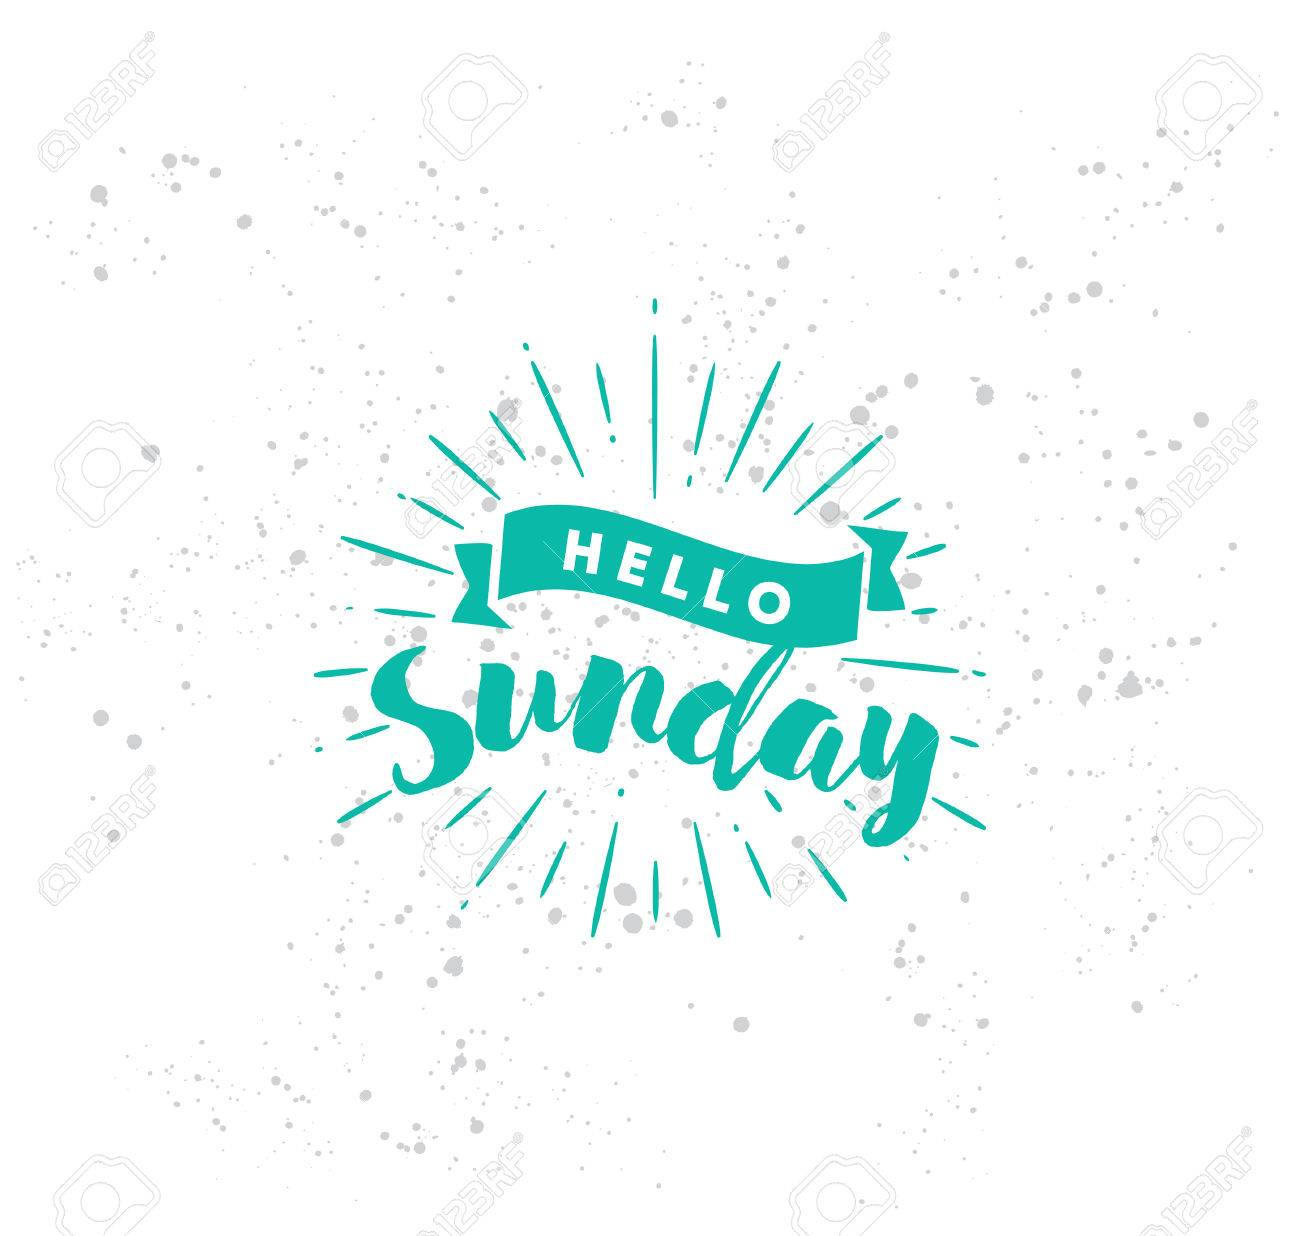 Hello Sunday Inspirational Quote Typography For Calendar Or